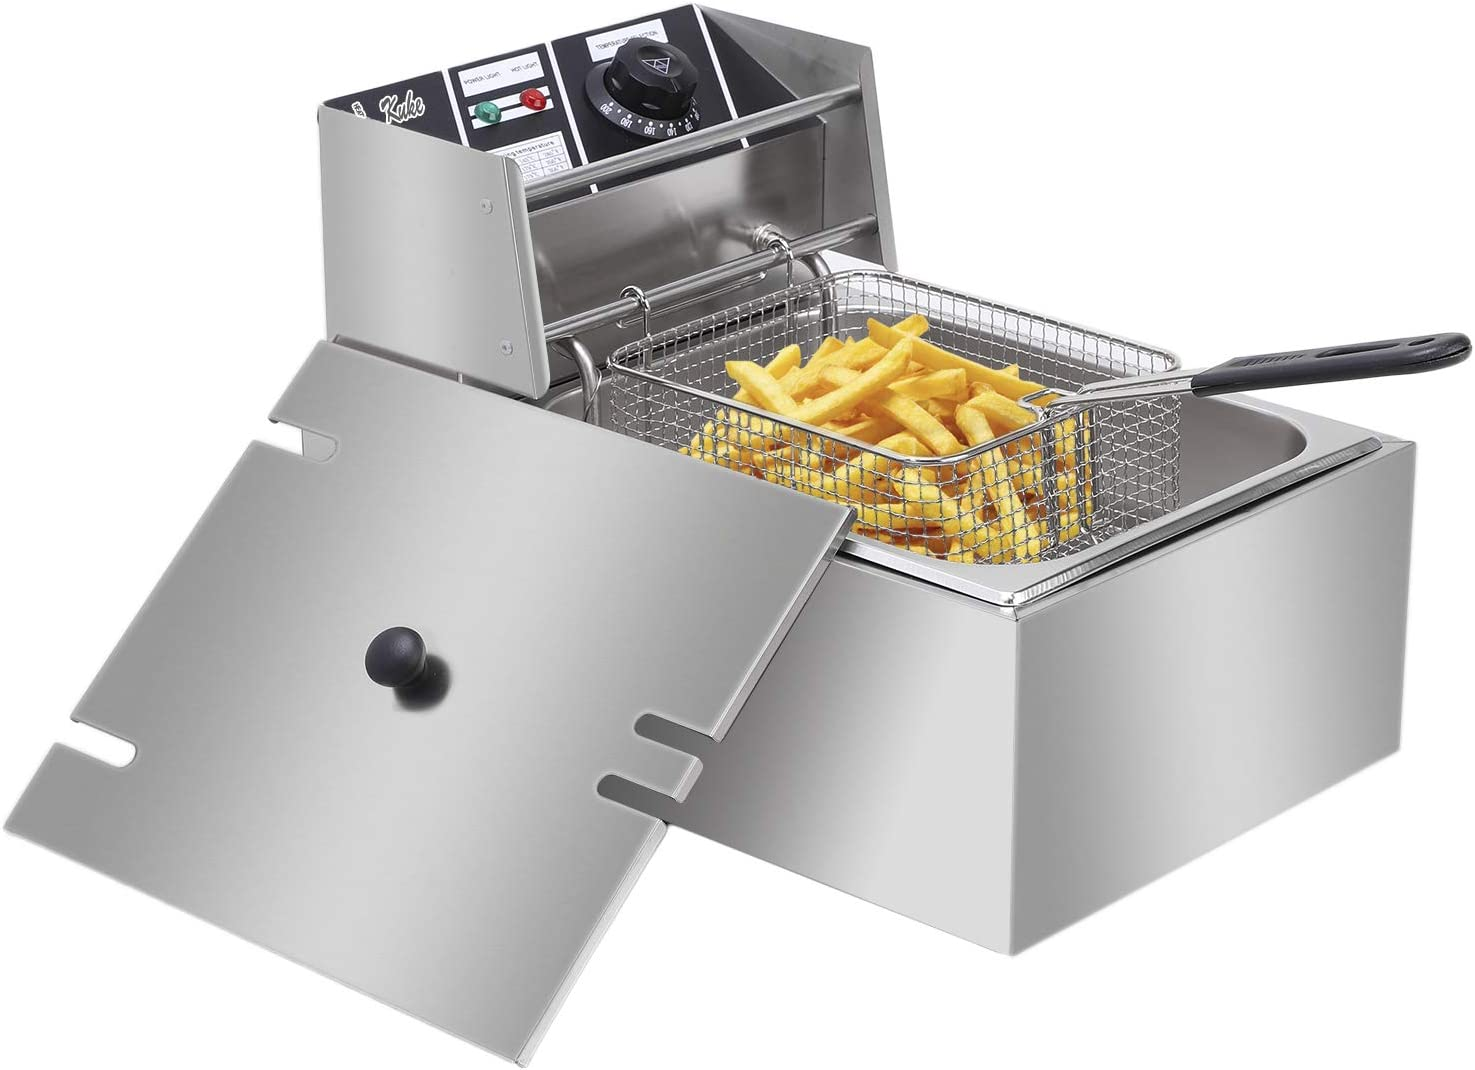 QISE Heavy Duty Deep Fryer, Stainless Steel Large Single Cylinder Electric Fryers with Removable Basket and Professional Heating Element 110V/5000W Max US Plug (6.3QT/6L)